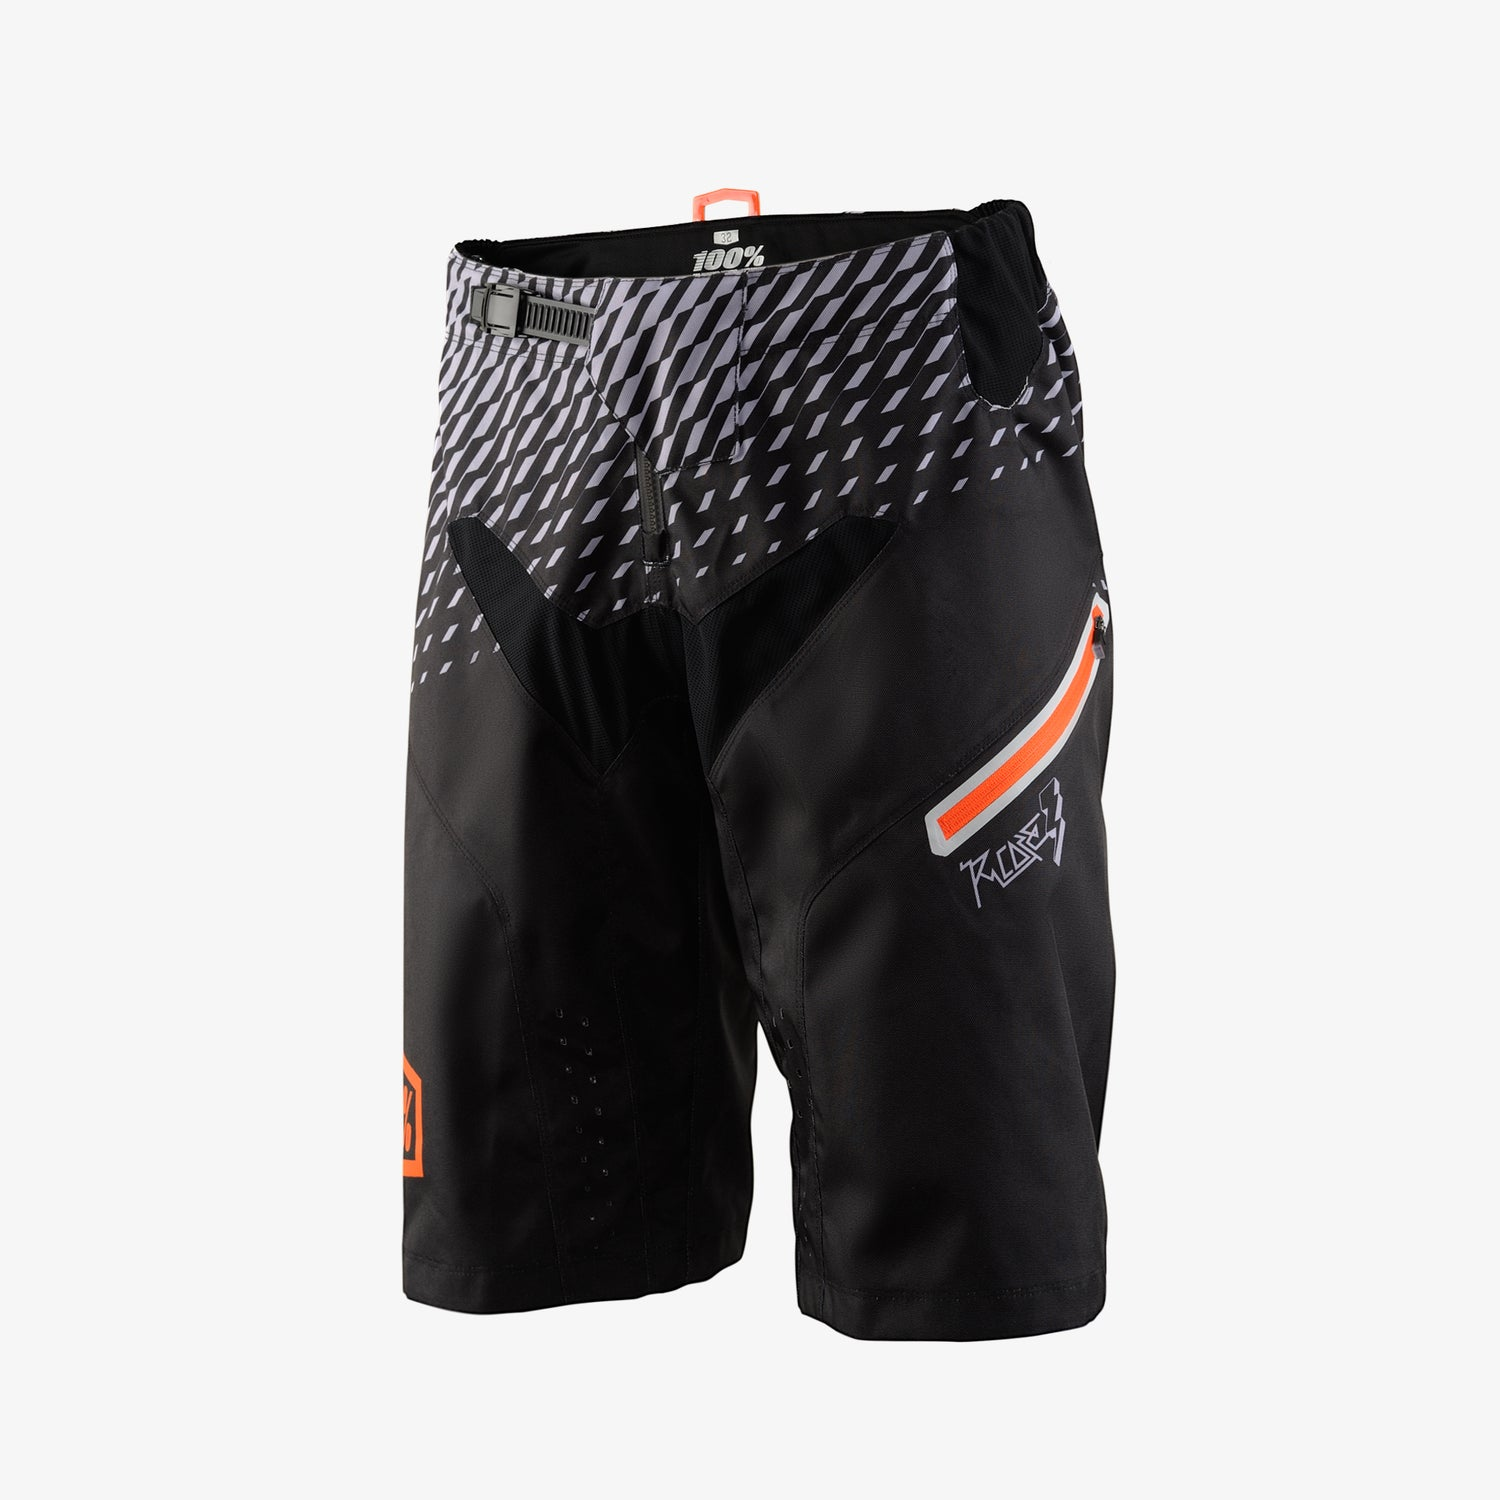 R-CORE DH Shorts - Supra - Black/Grey